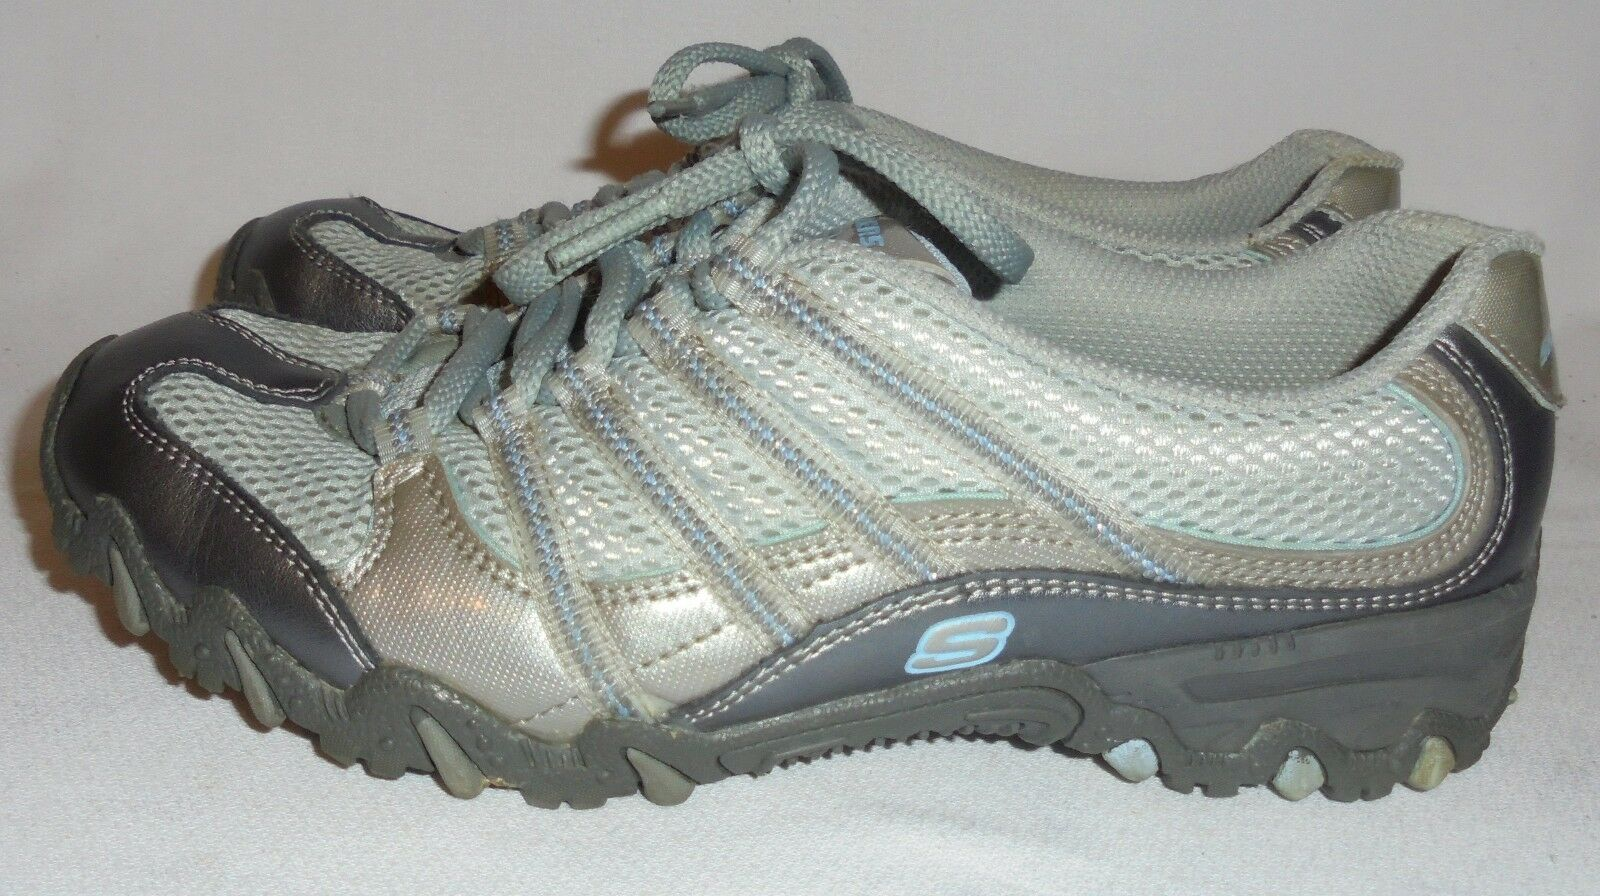 SKECHERS, LADIES GRAY LEATHER ATHLETIC SHOE, SIZE 6 1/2 M Seasonal price cuts, discount benefits